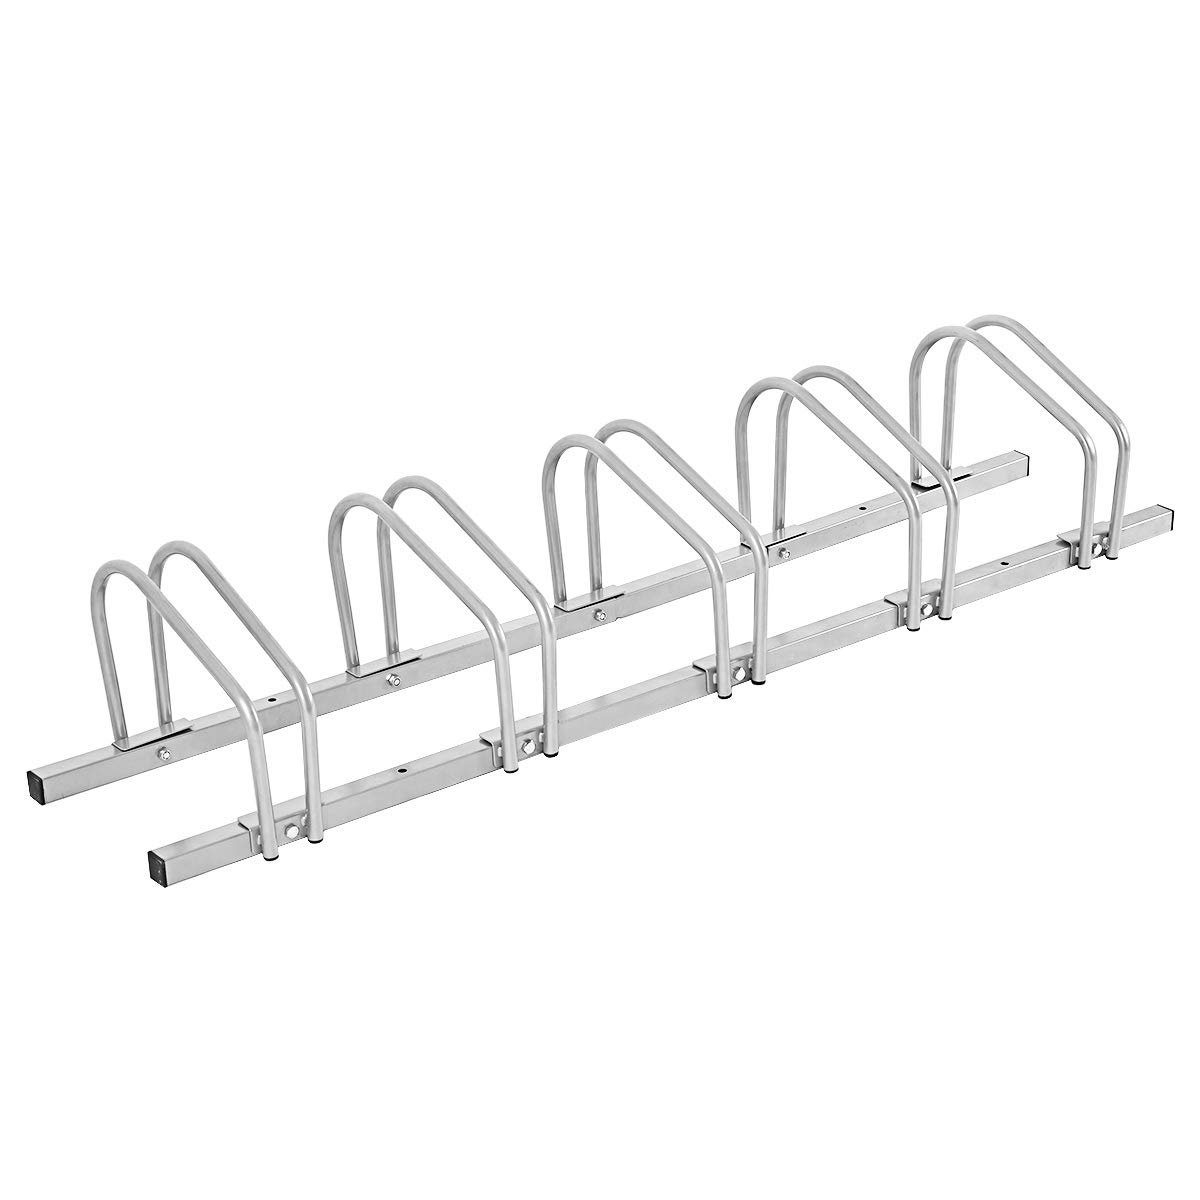 Goplus 5 Bike Rack Bicycle Stand Parking Garage Storage Organizer Cycling Rack Silver Superbuy